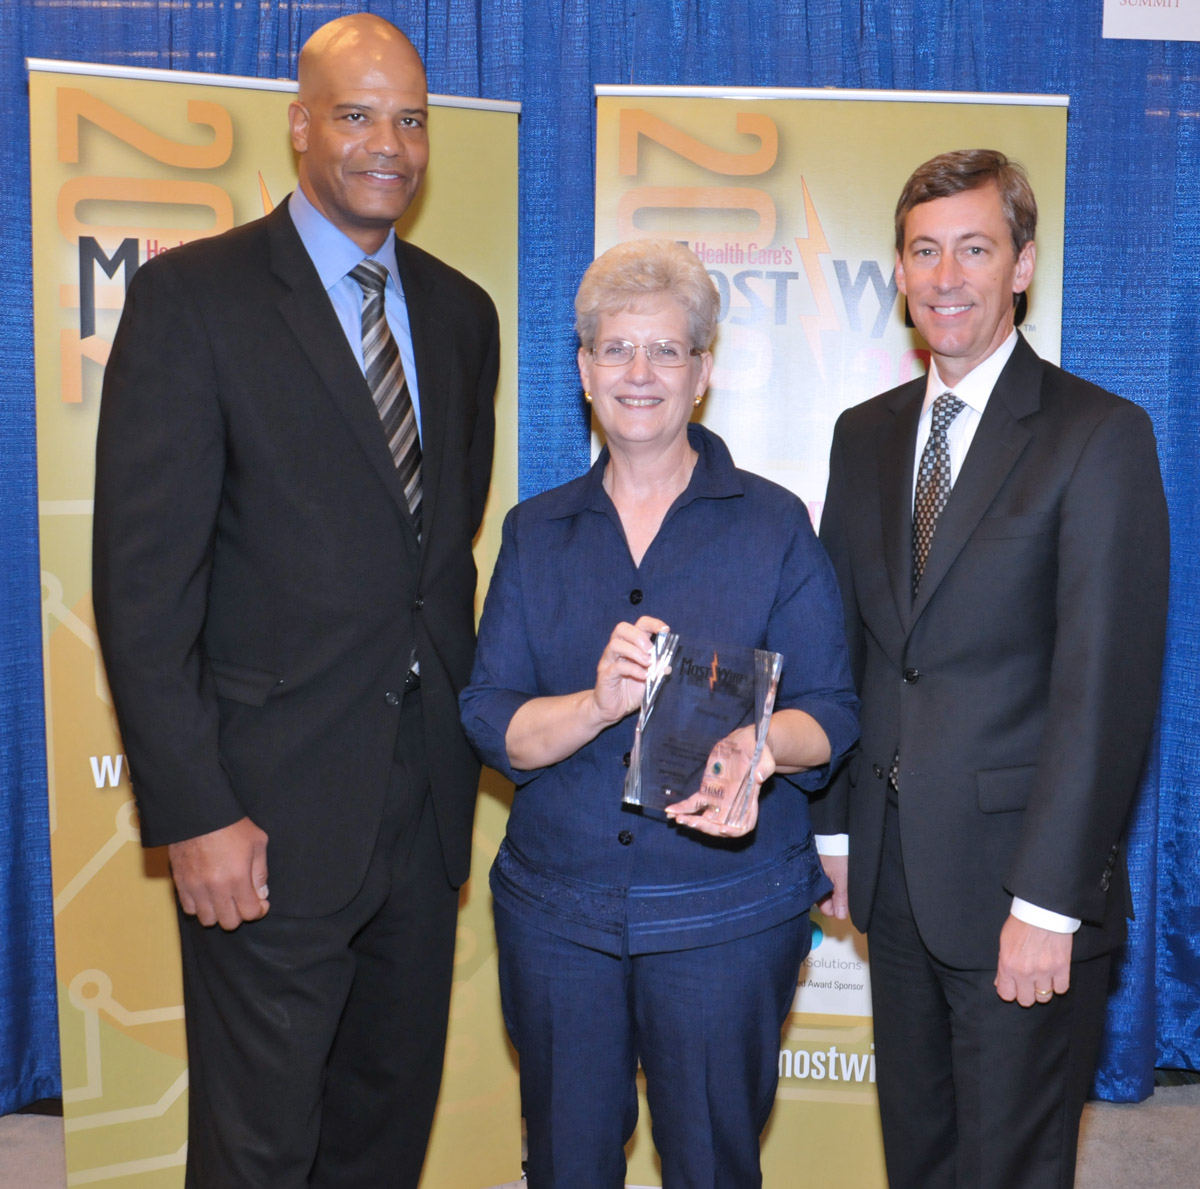 Stone County Medical Center Named Most Wired — KFFB 106.1 FM ...